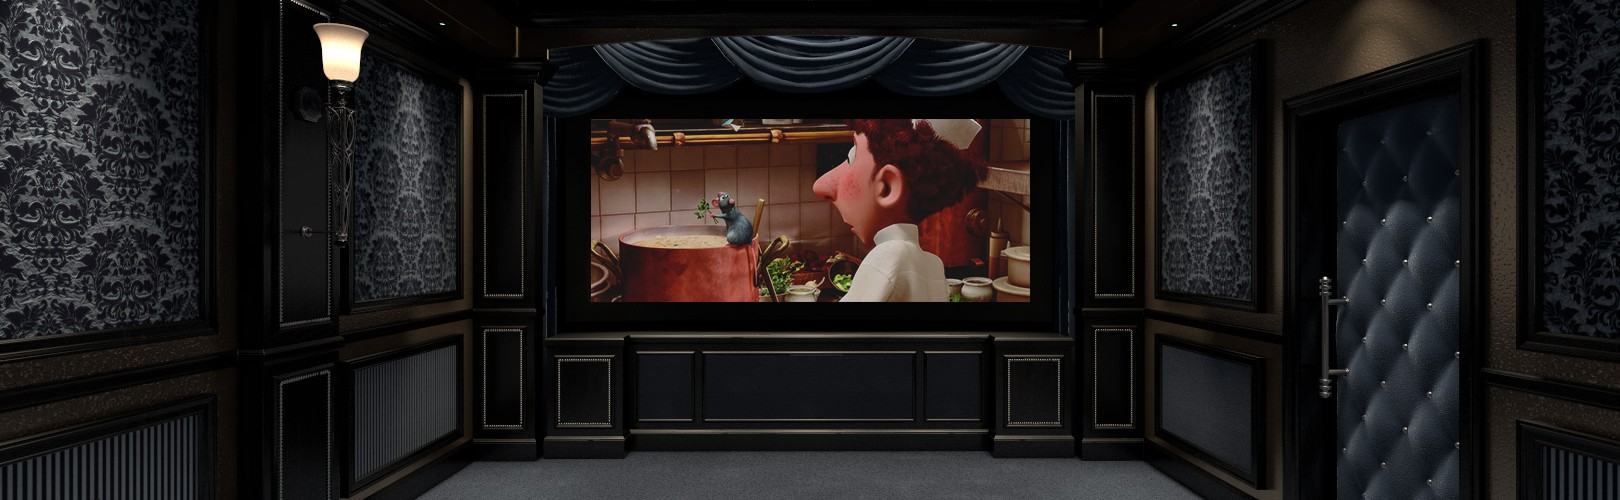 Home - Cinema Design Group Home Theatre Design on lounge suites designs, exercise room designs, fireplace designs, home renovation designs, small theater room designs, home cooking designs, living room designs, custom media wall designs, tools designs, home theatre systems, best home theater designs, home art designs, easy home theater designs, great home theater designs, interior design, kitchen and bathroom design, home reception designs, exclusive custom home theater designs, home audio designs, home theater design, theatre room designs, home business designs, home theater rooms, home office design, home salon designs, home brewery designs,